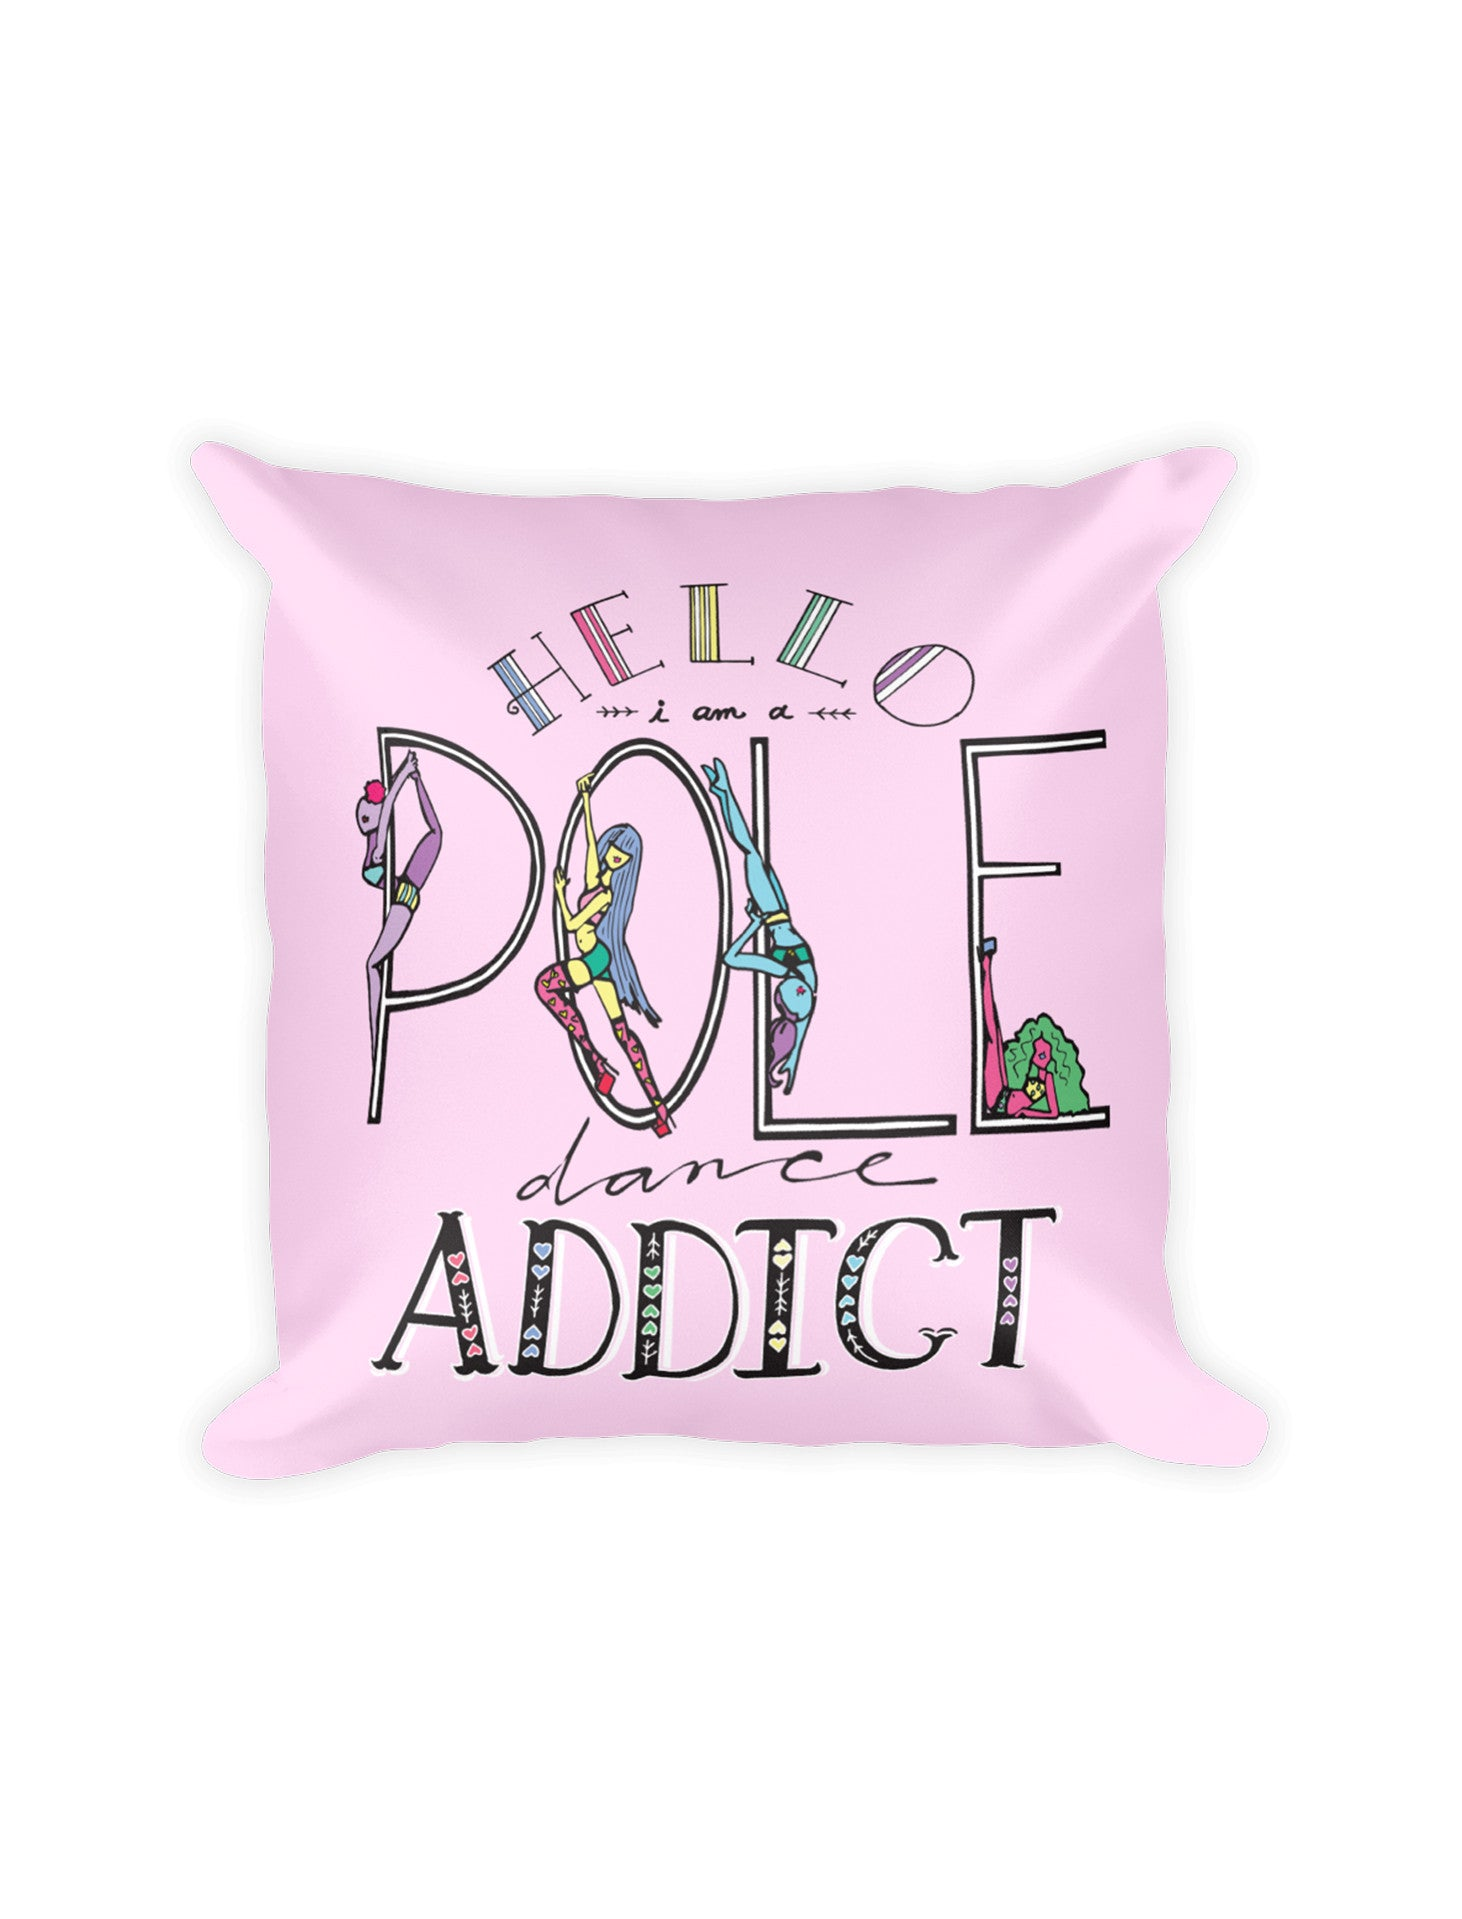 Pole Dancing Addict Pillow - Push + Pole - 1